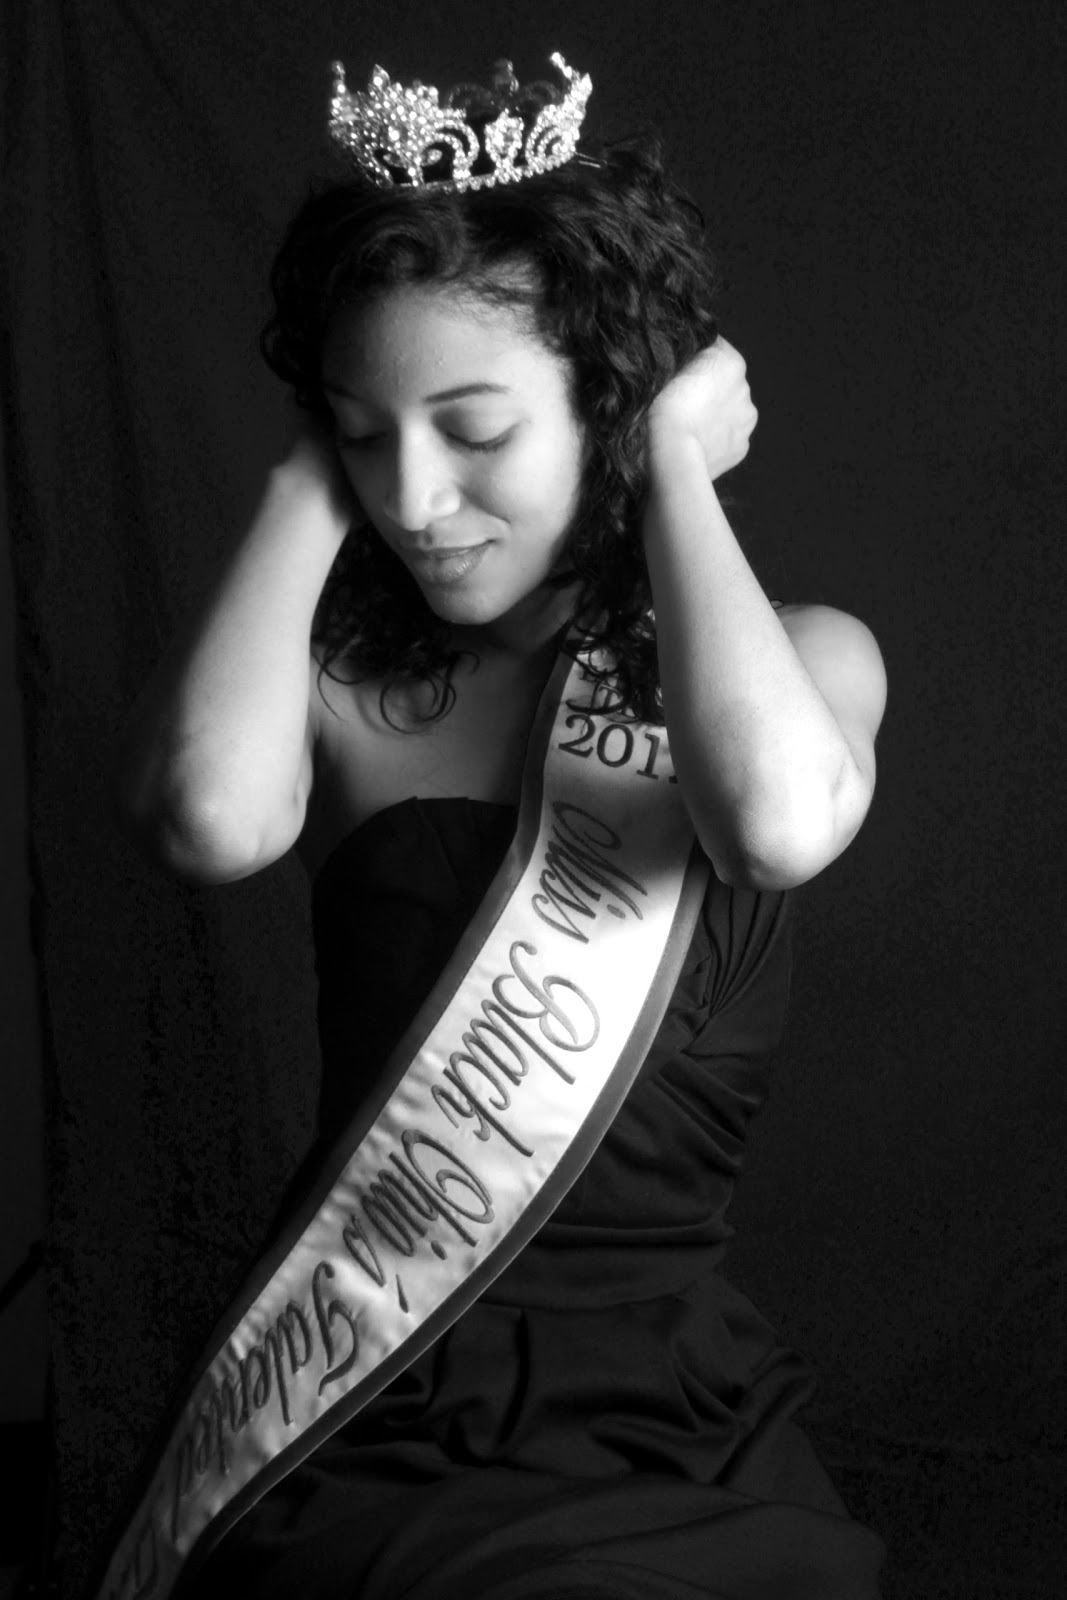 Being Miss Black Teen Ohio has exceeded my expectations.